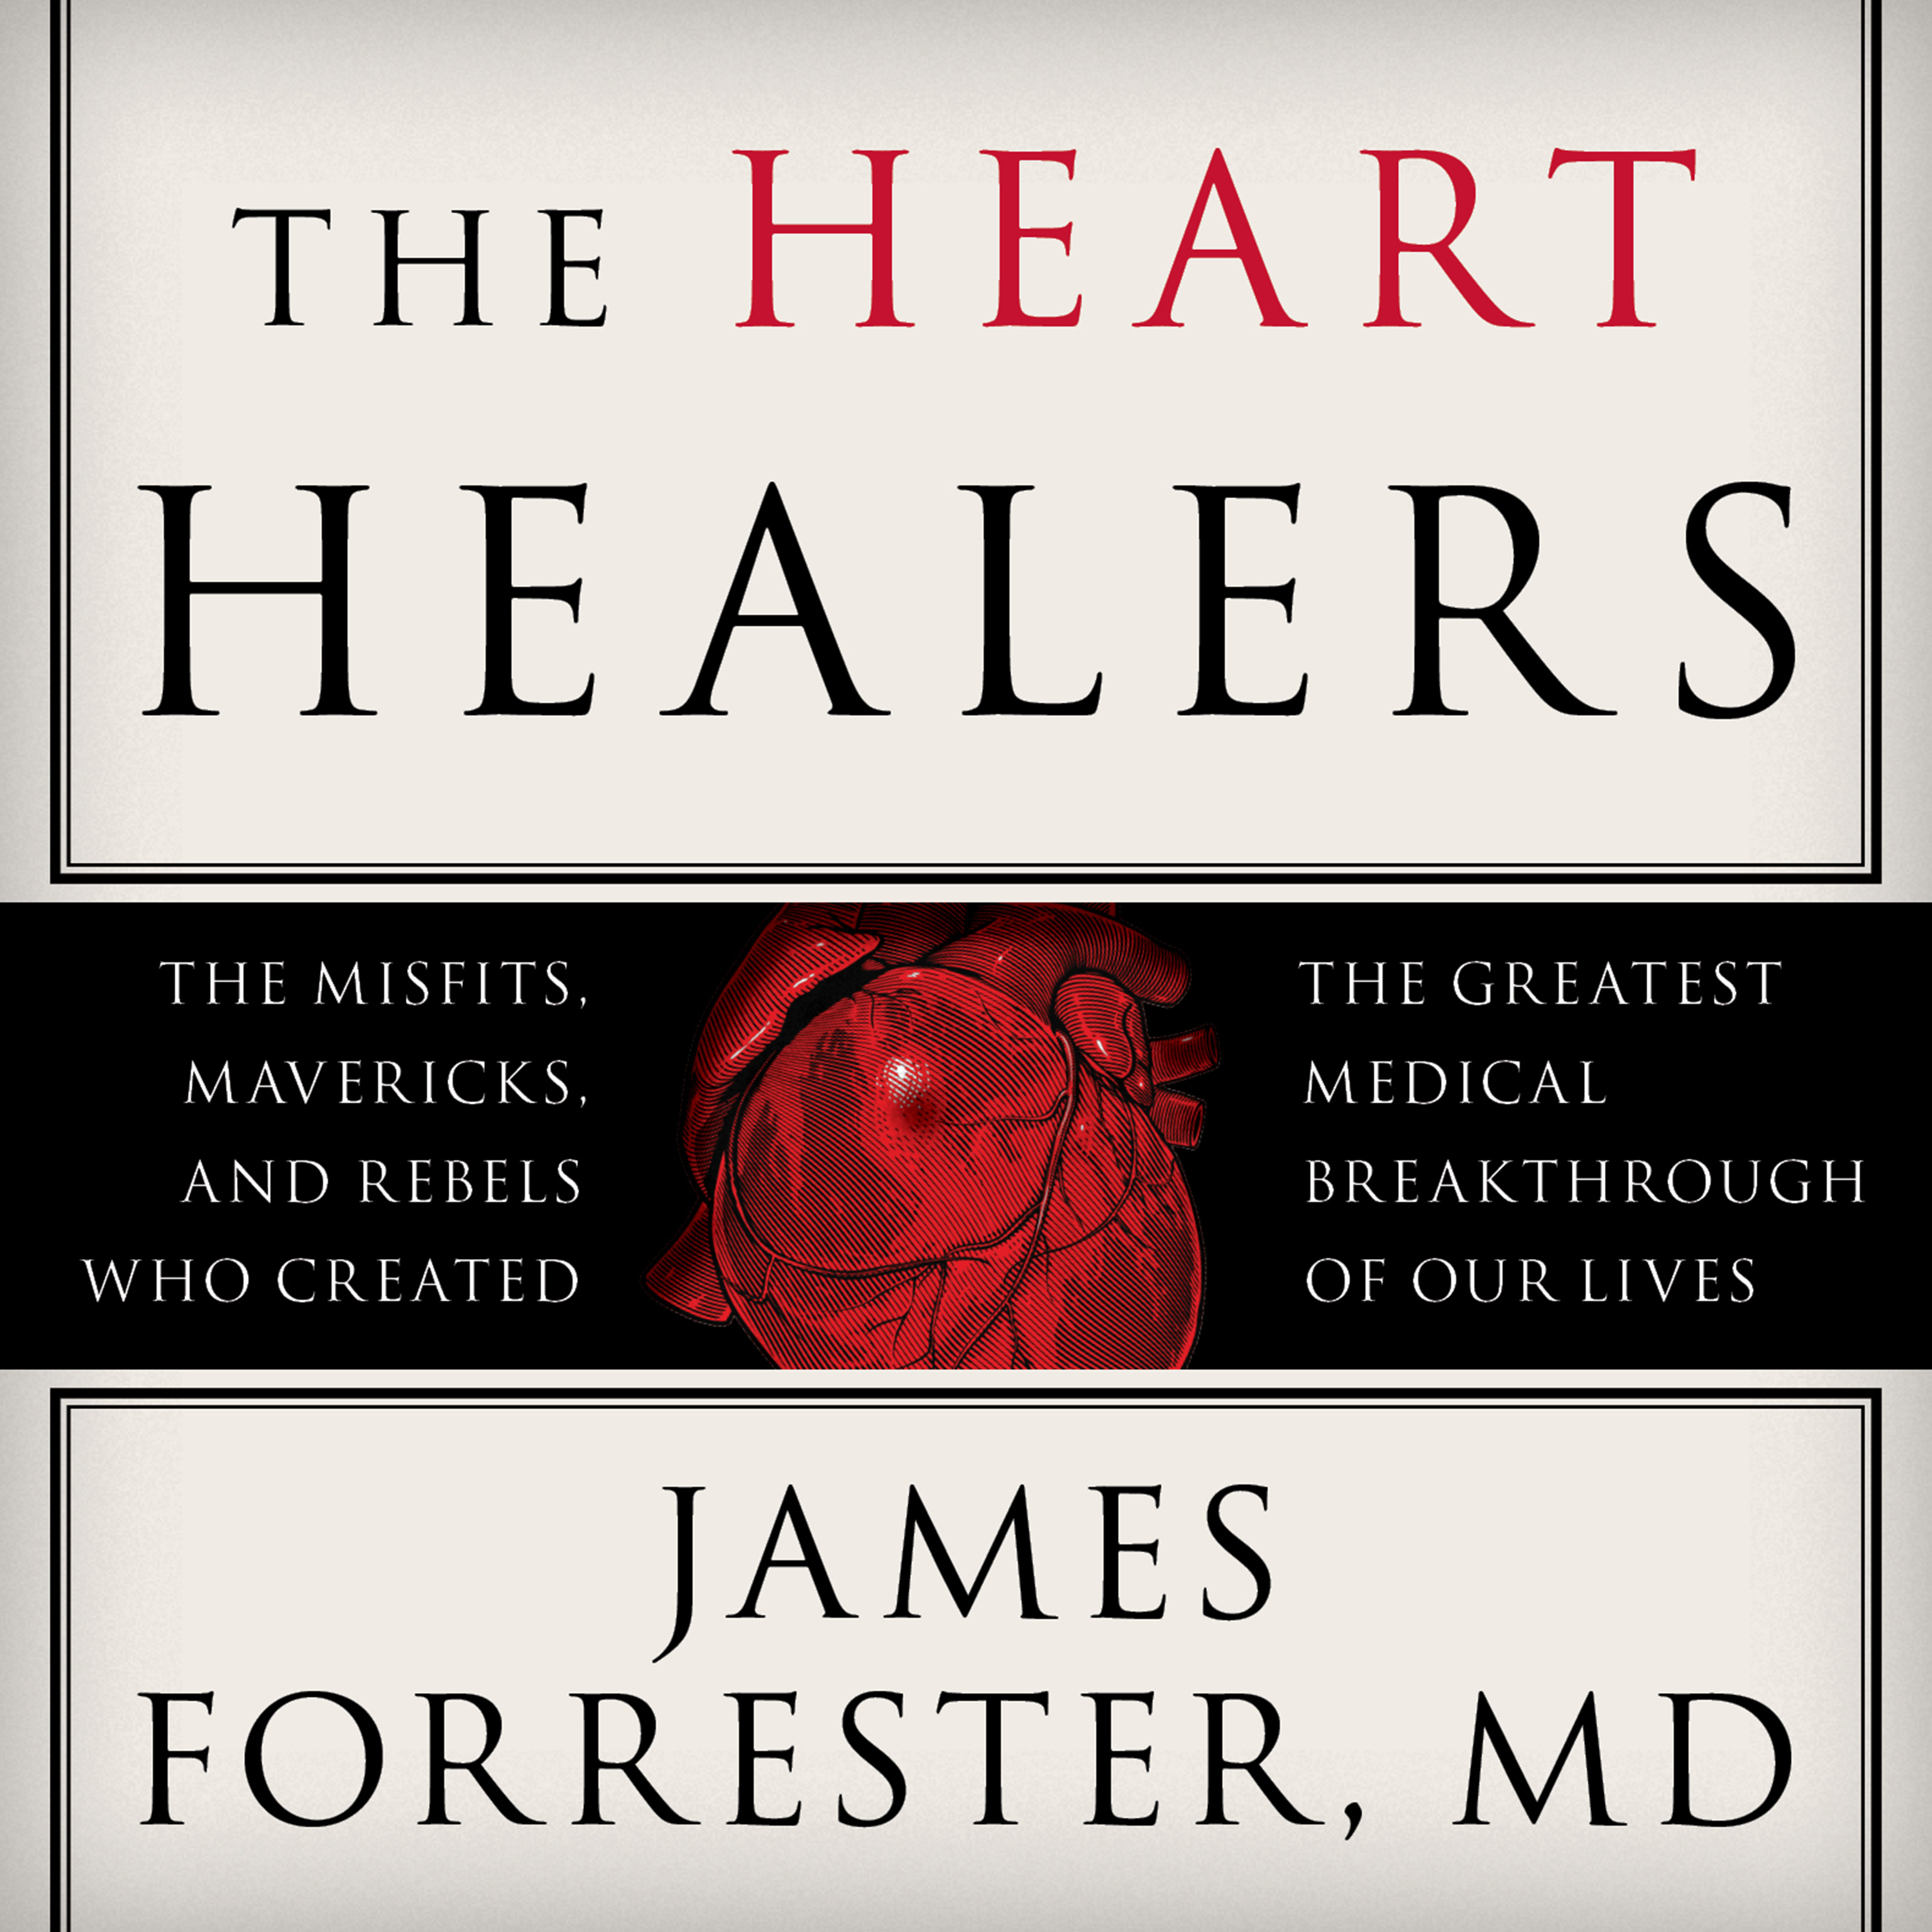 Printable The Heart Healers: The Misfits, Mavericks, and Rebels Who Created the Greatest Medical Breakthrough of Our Lives Audiobook Cover Art